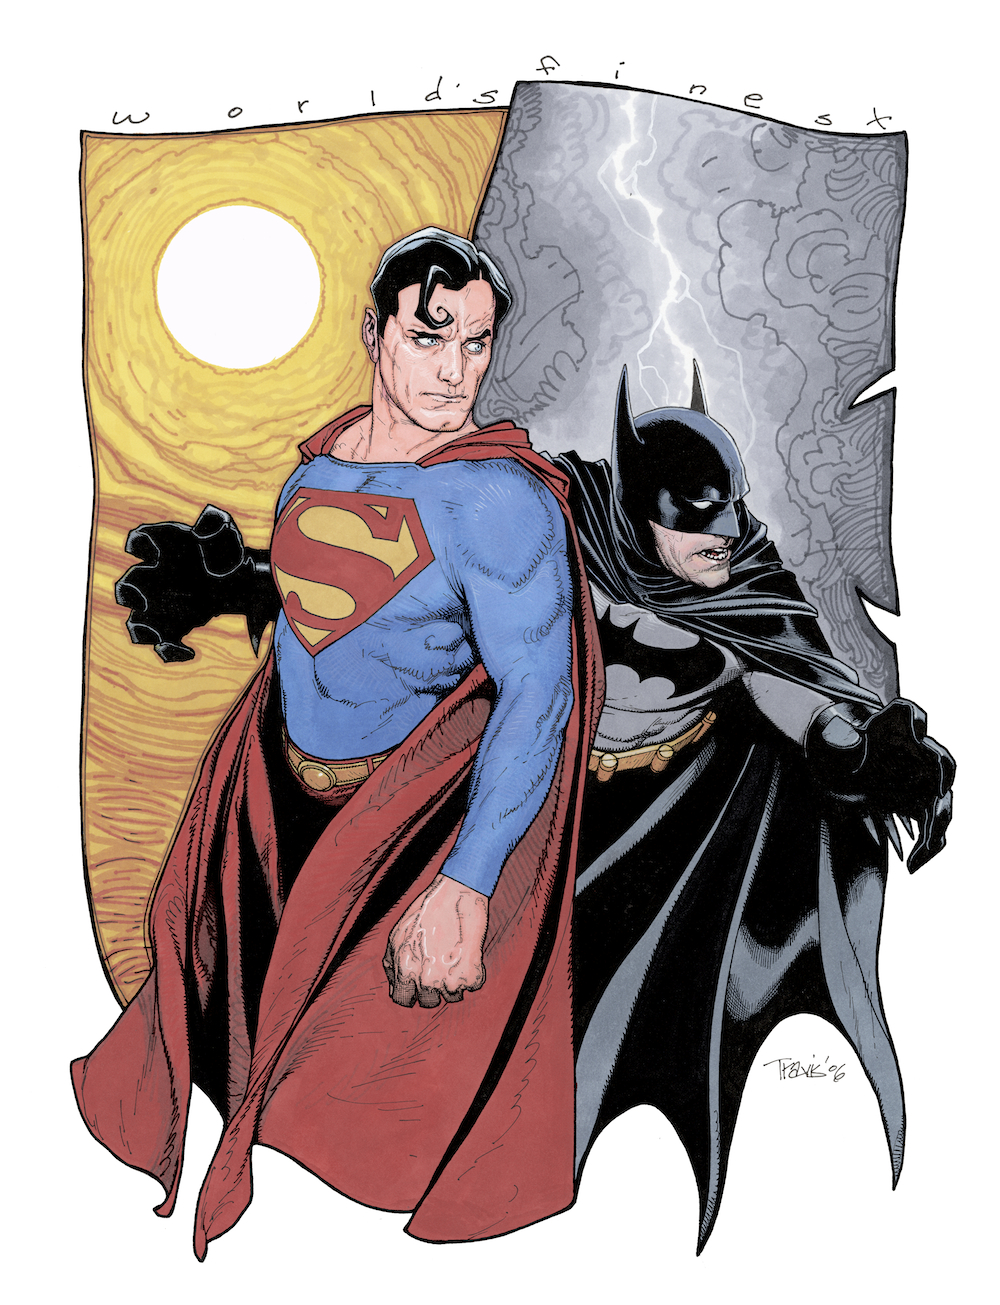 World'sFinest.jpg